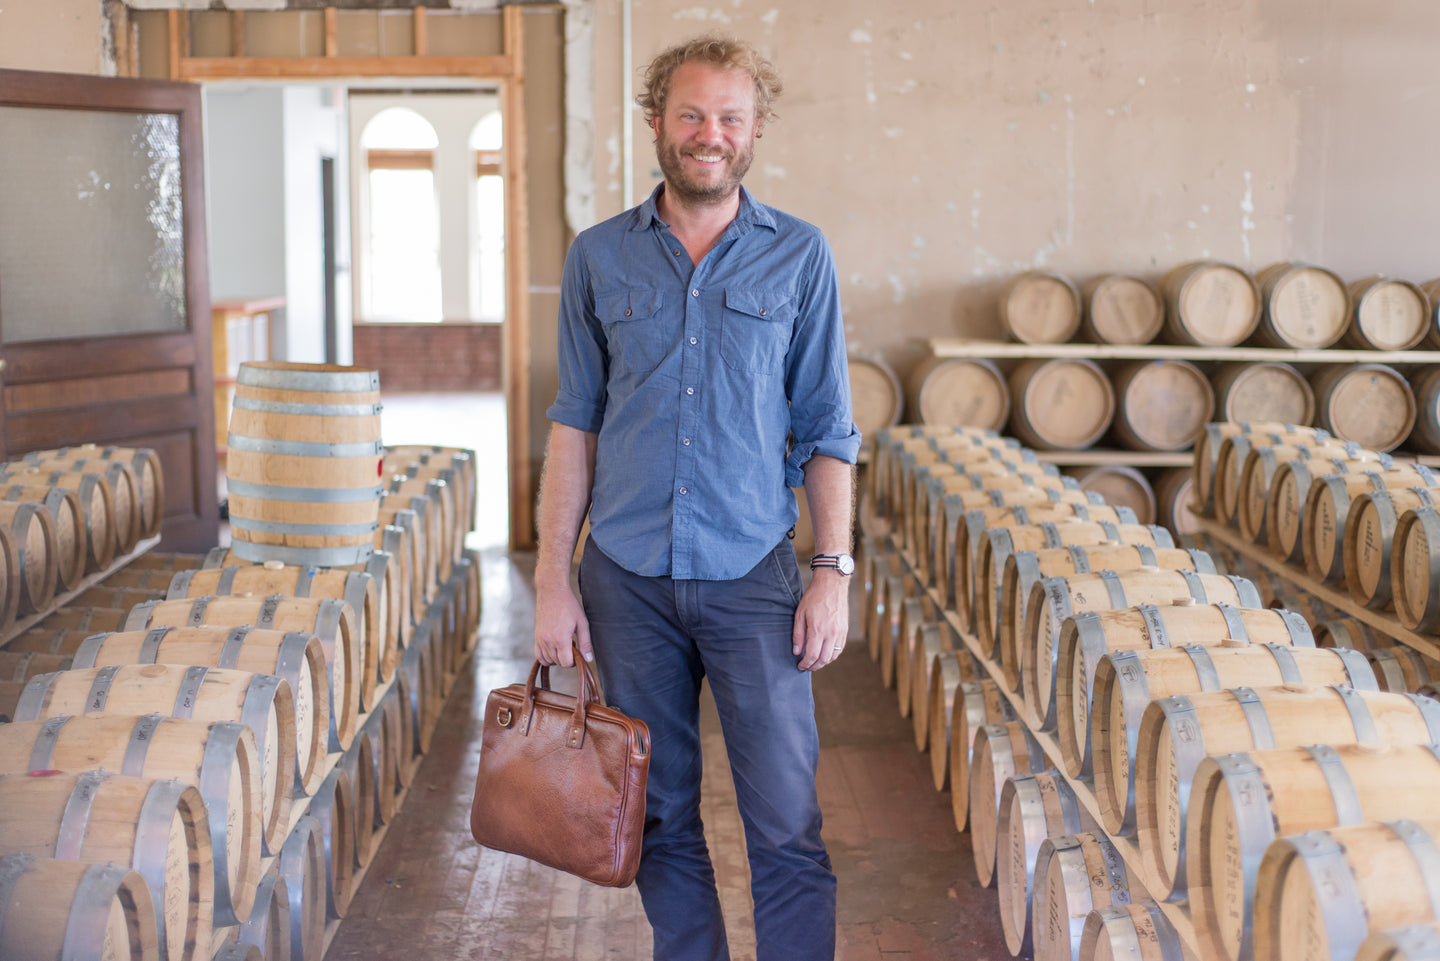 Founder Profile: Colin Spoelman of Kings County Distillery